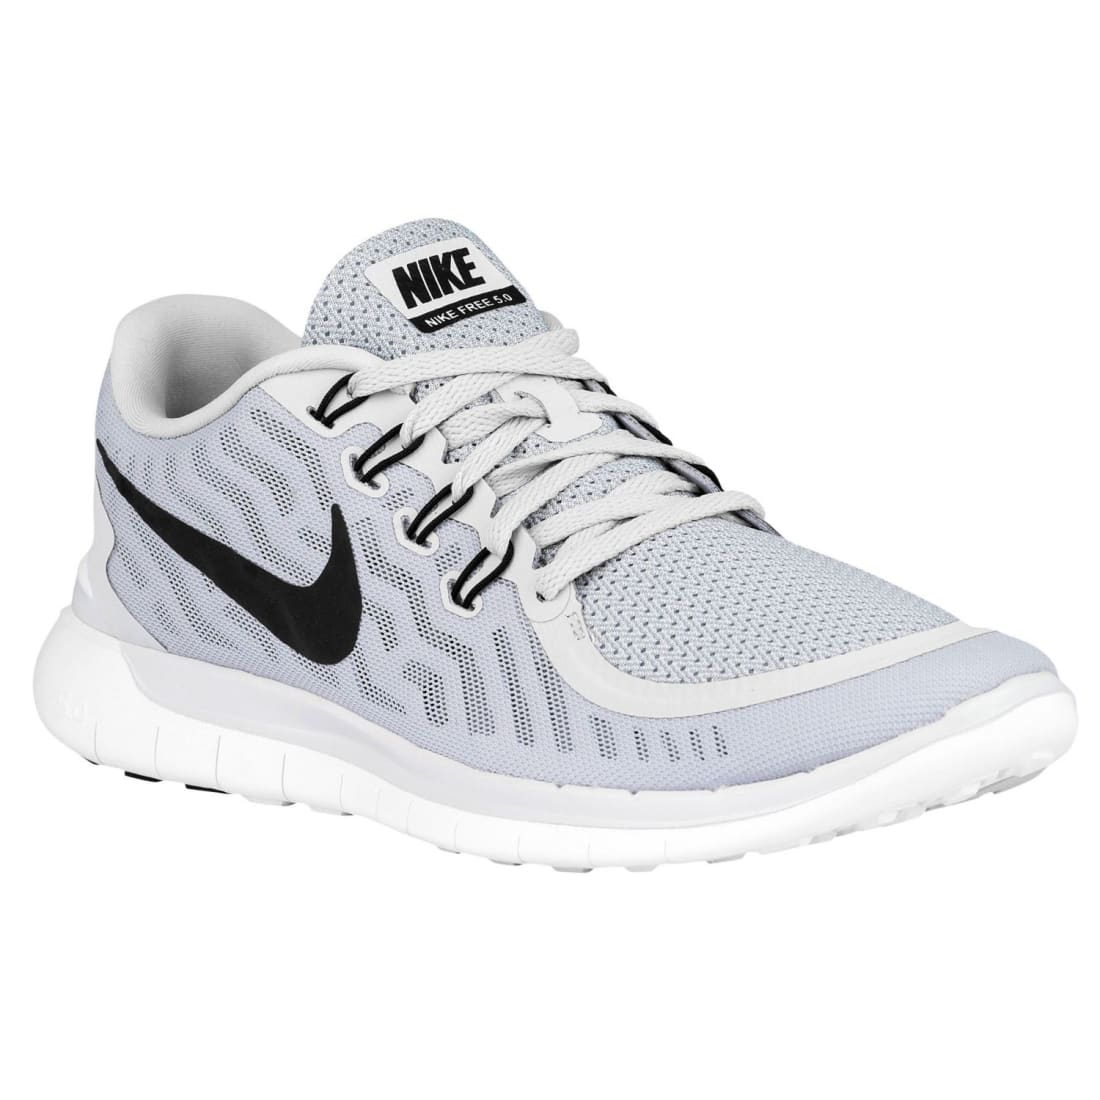 100% authentic 381d2 37c84 Nike Free 5.0 2015 | Nike | Sole Collector